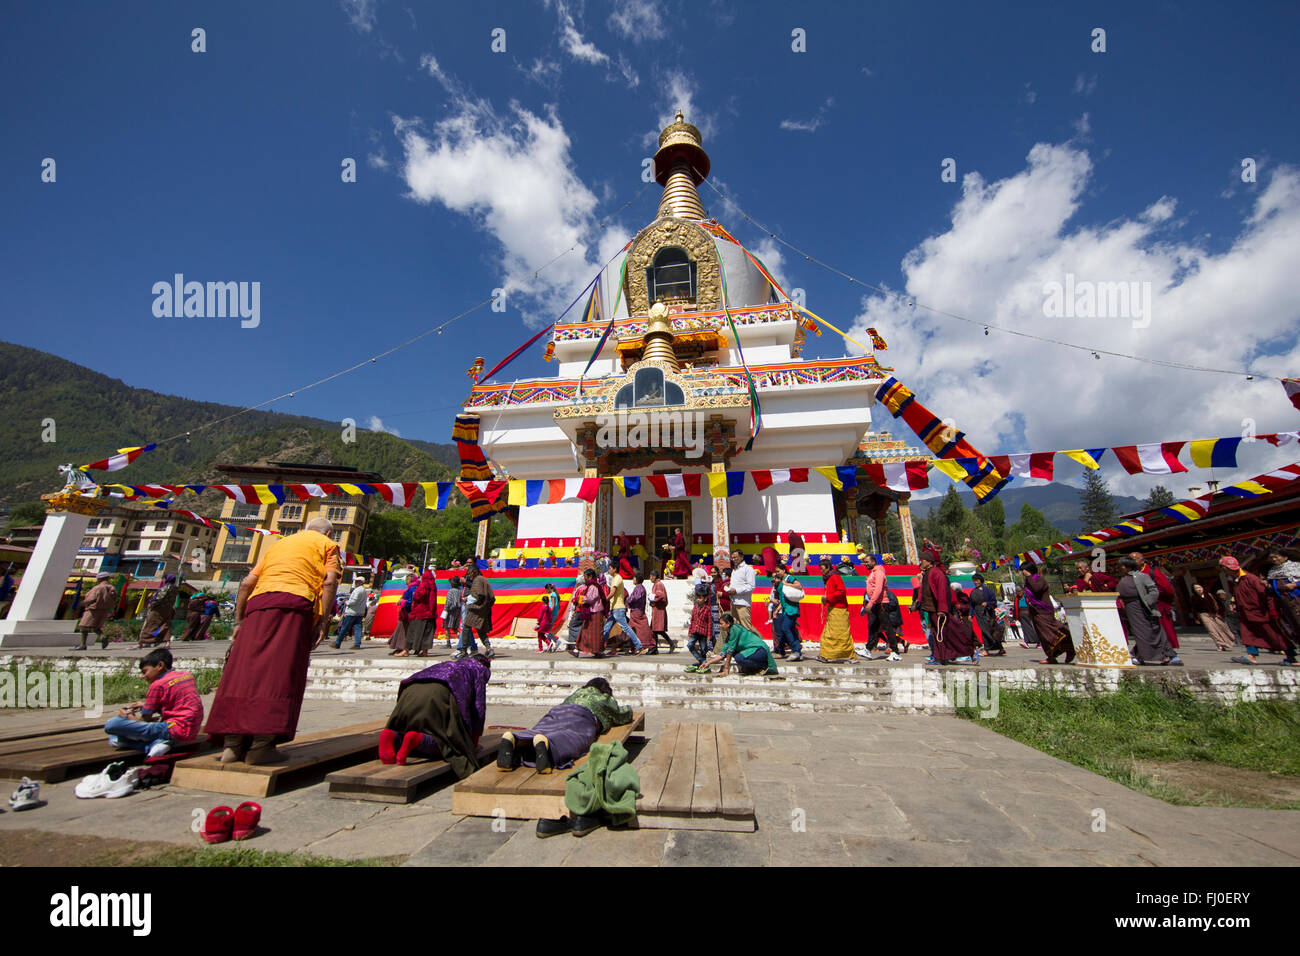 Prayers at memorial Chorten in Thimpu - Stock Image